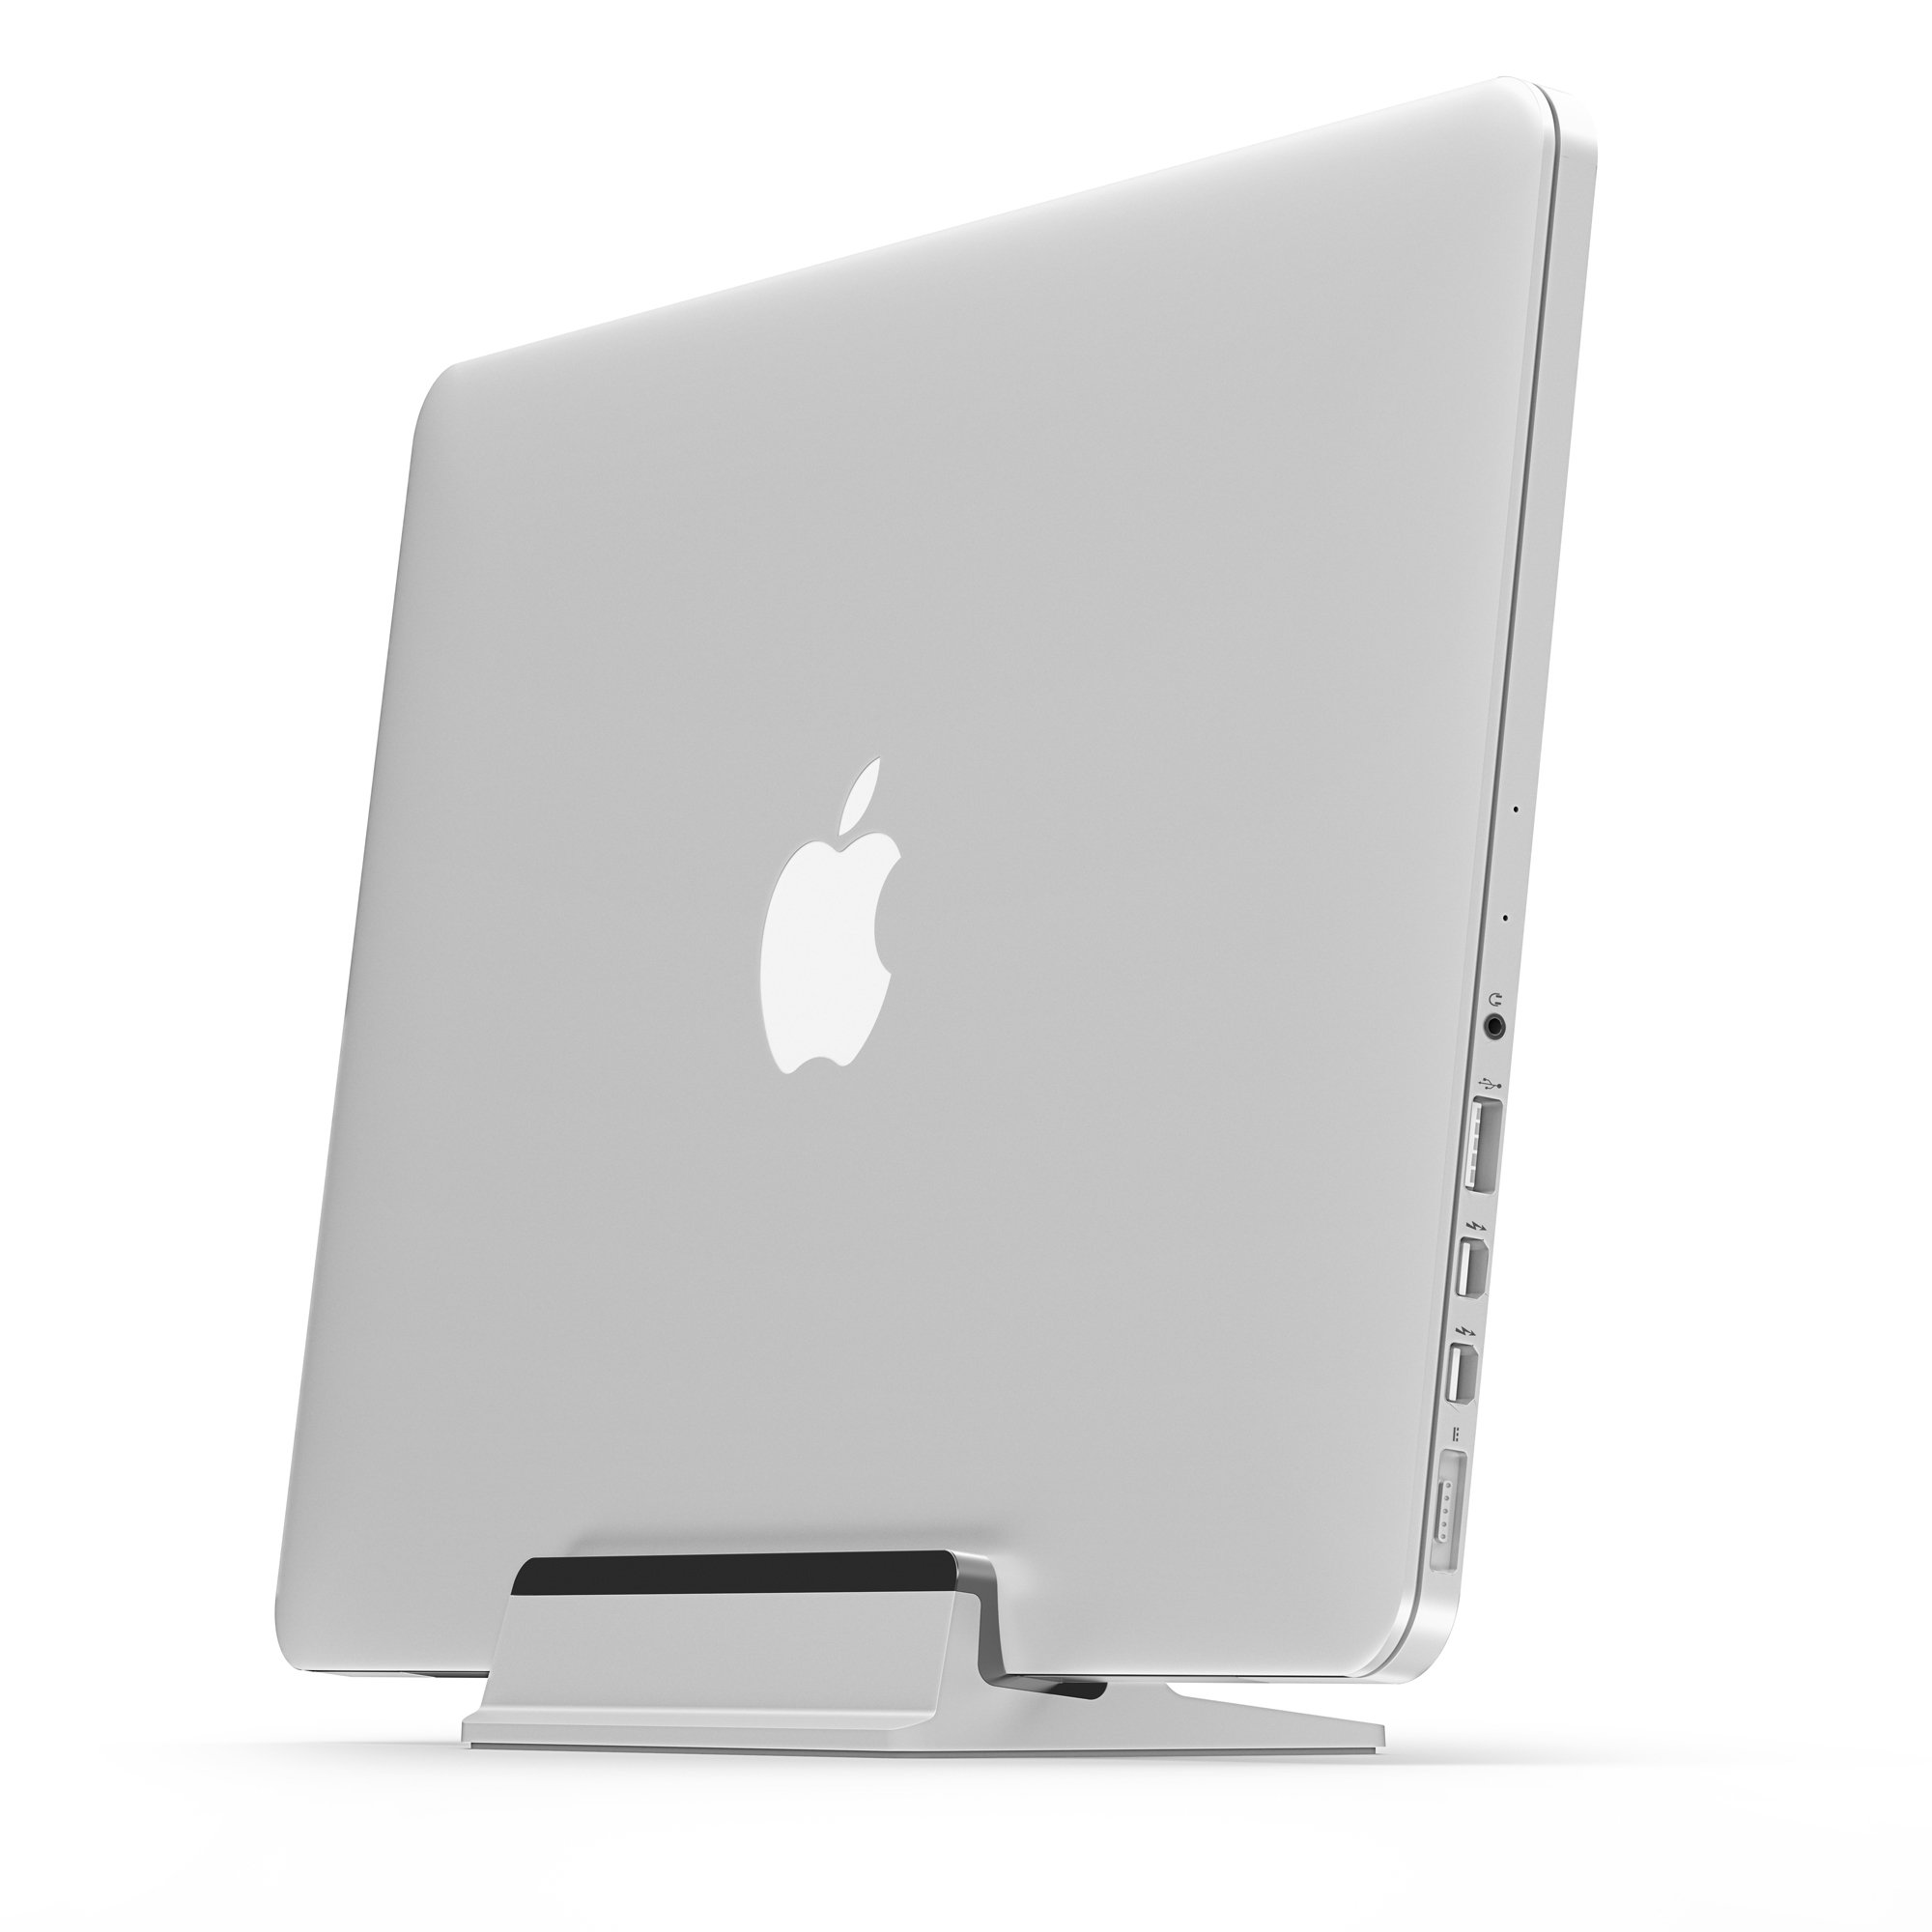 UPPERCASE KRADL Pro Small Profile Aluminum Vertical Stand for Retina MacBook Pro 13'' or 15'' (2012 to 2015 Releases), Silver/Black by UPPERCASE (Image #1)